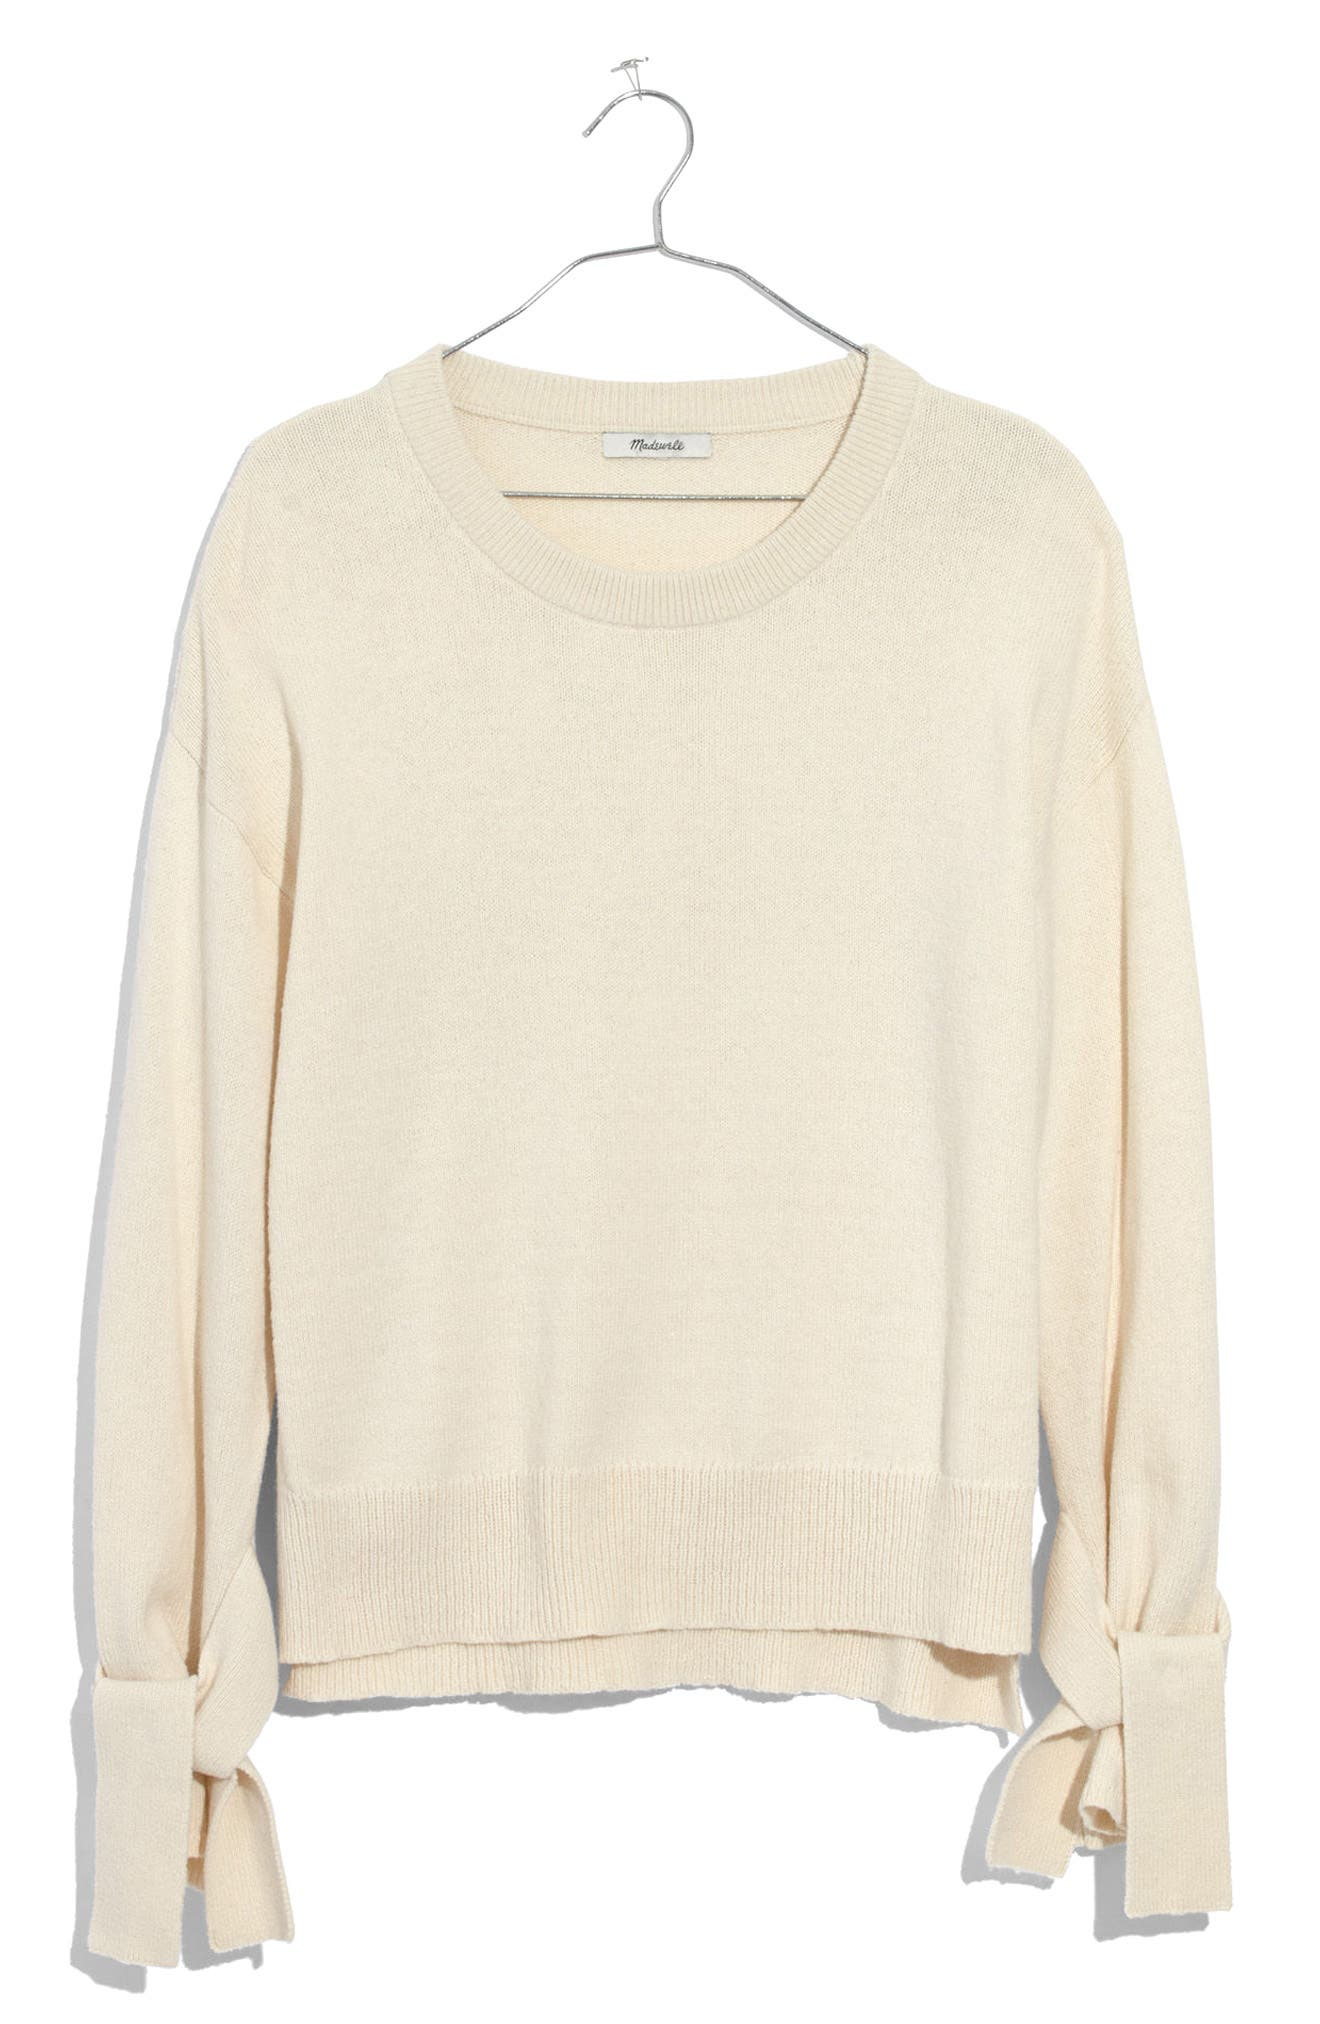 Madewell Tie Cuff Pullover Sweater